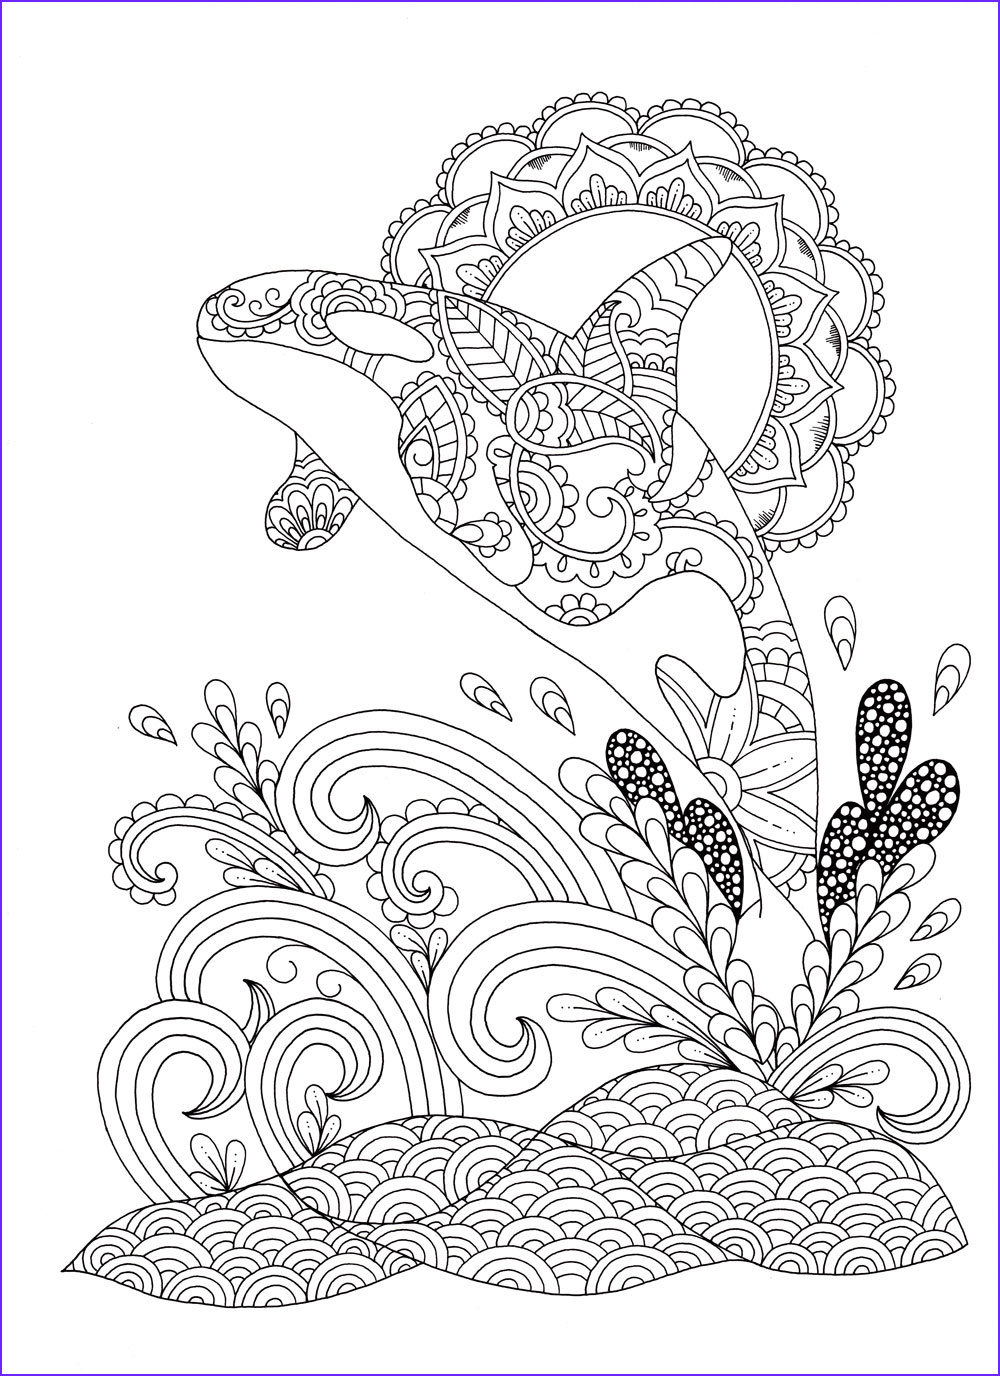 Coloring Books for Anxiety New Photos Special Needs Book Review